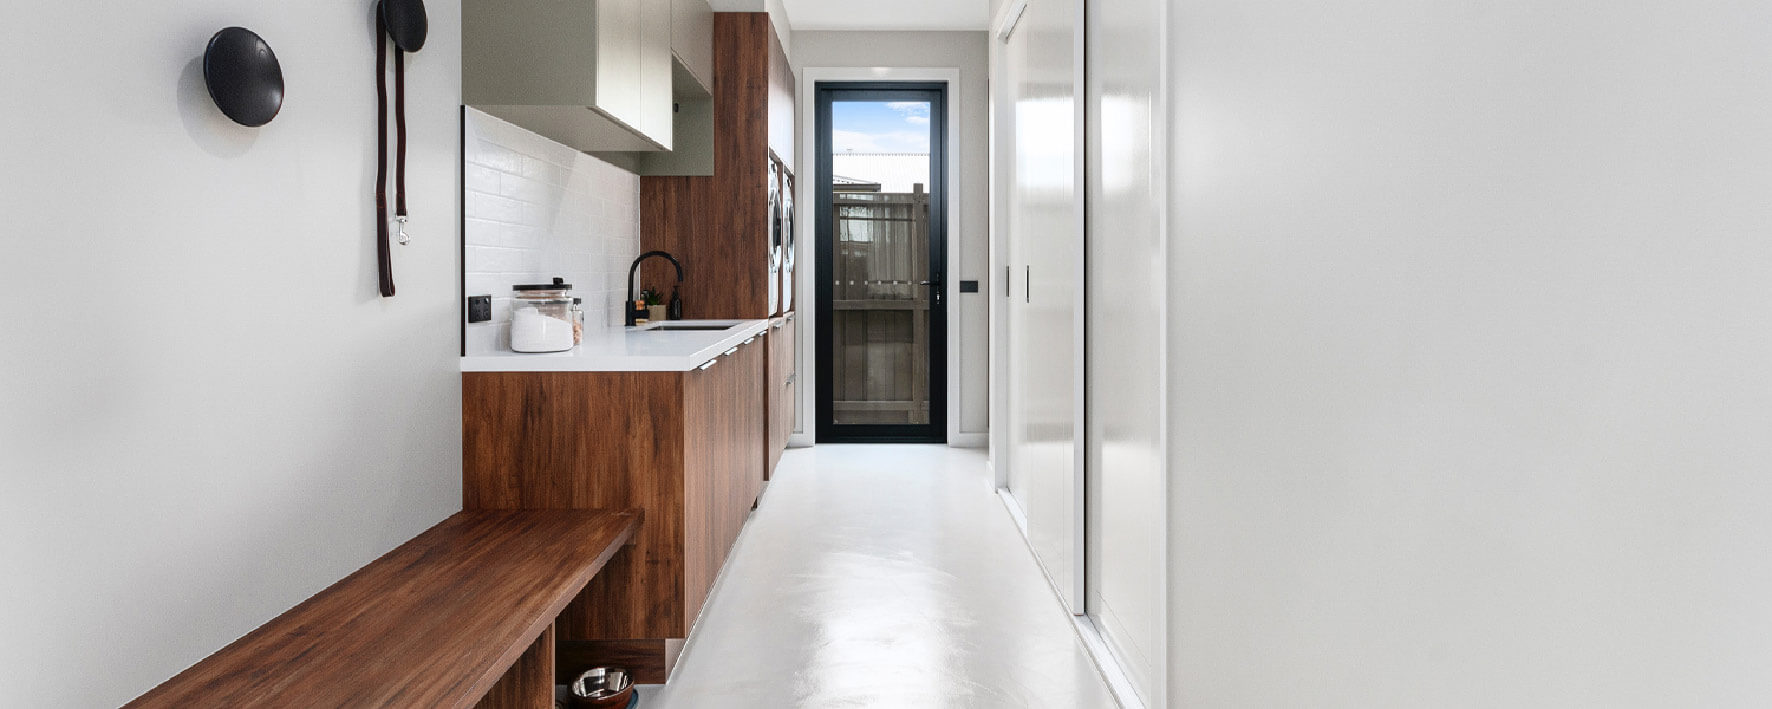 Laundry of Display Home by Virtue Homes